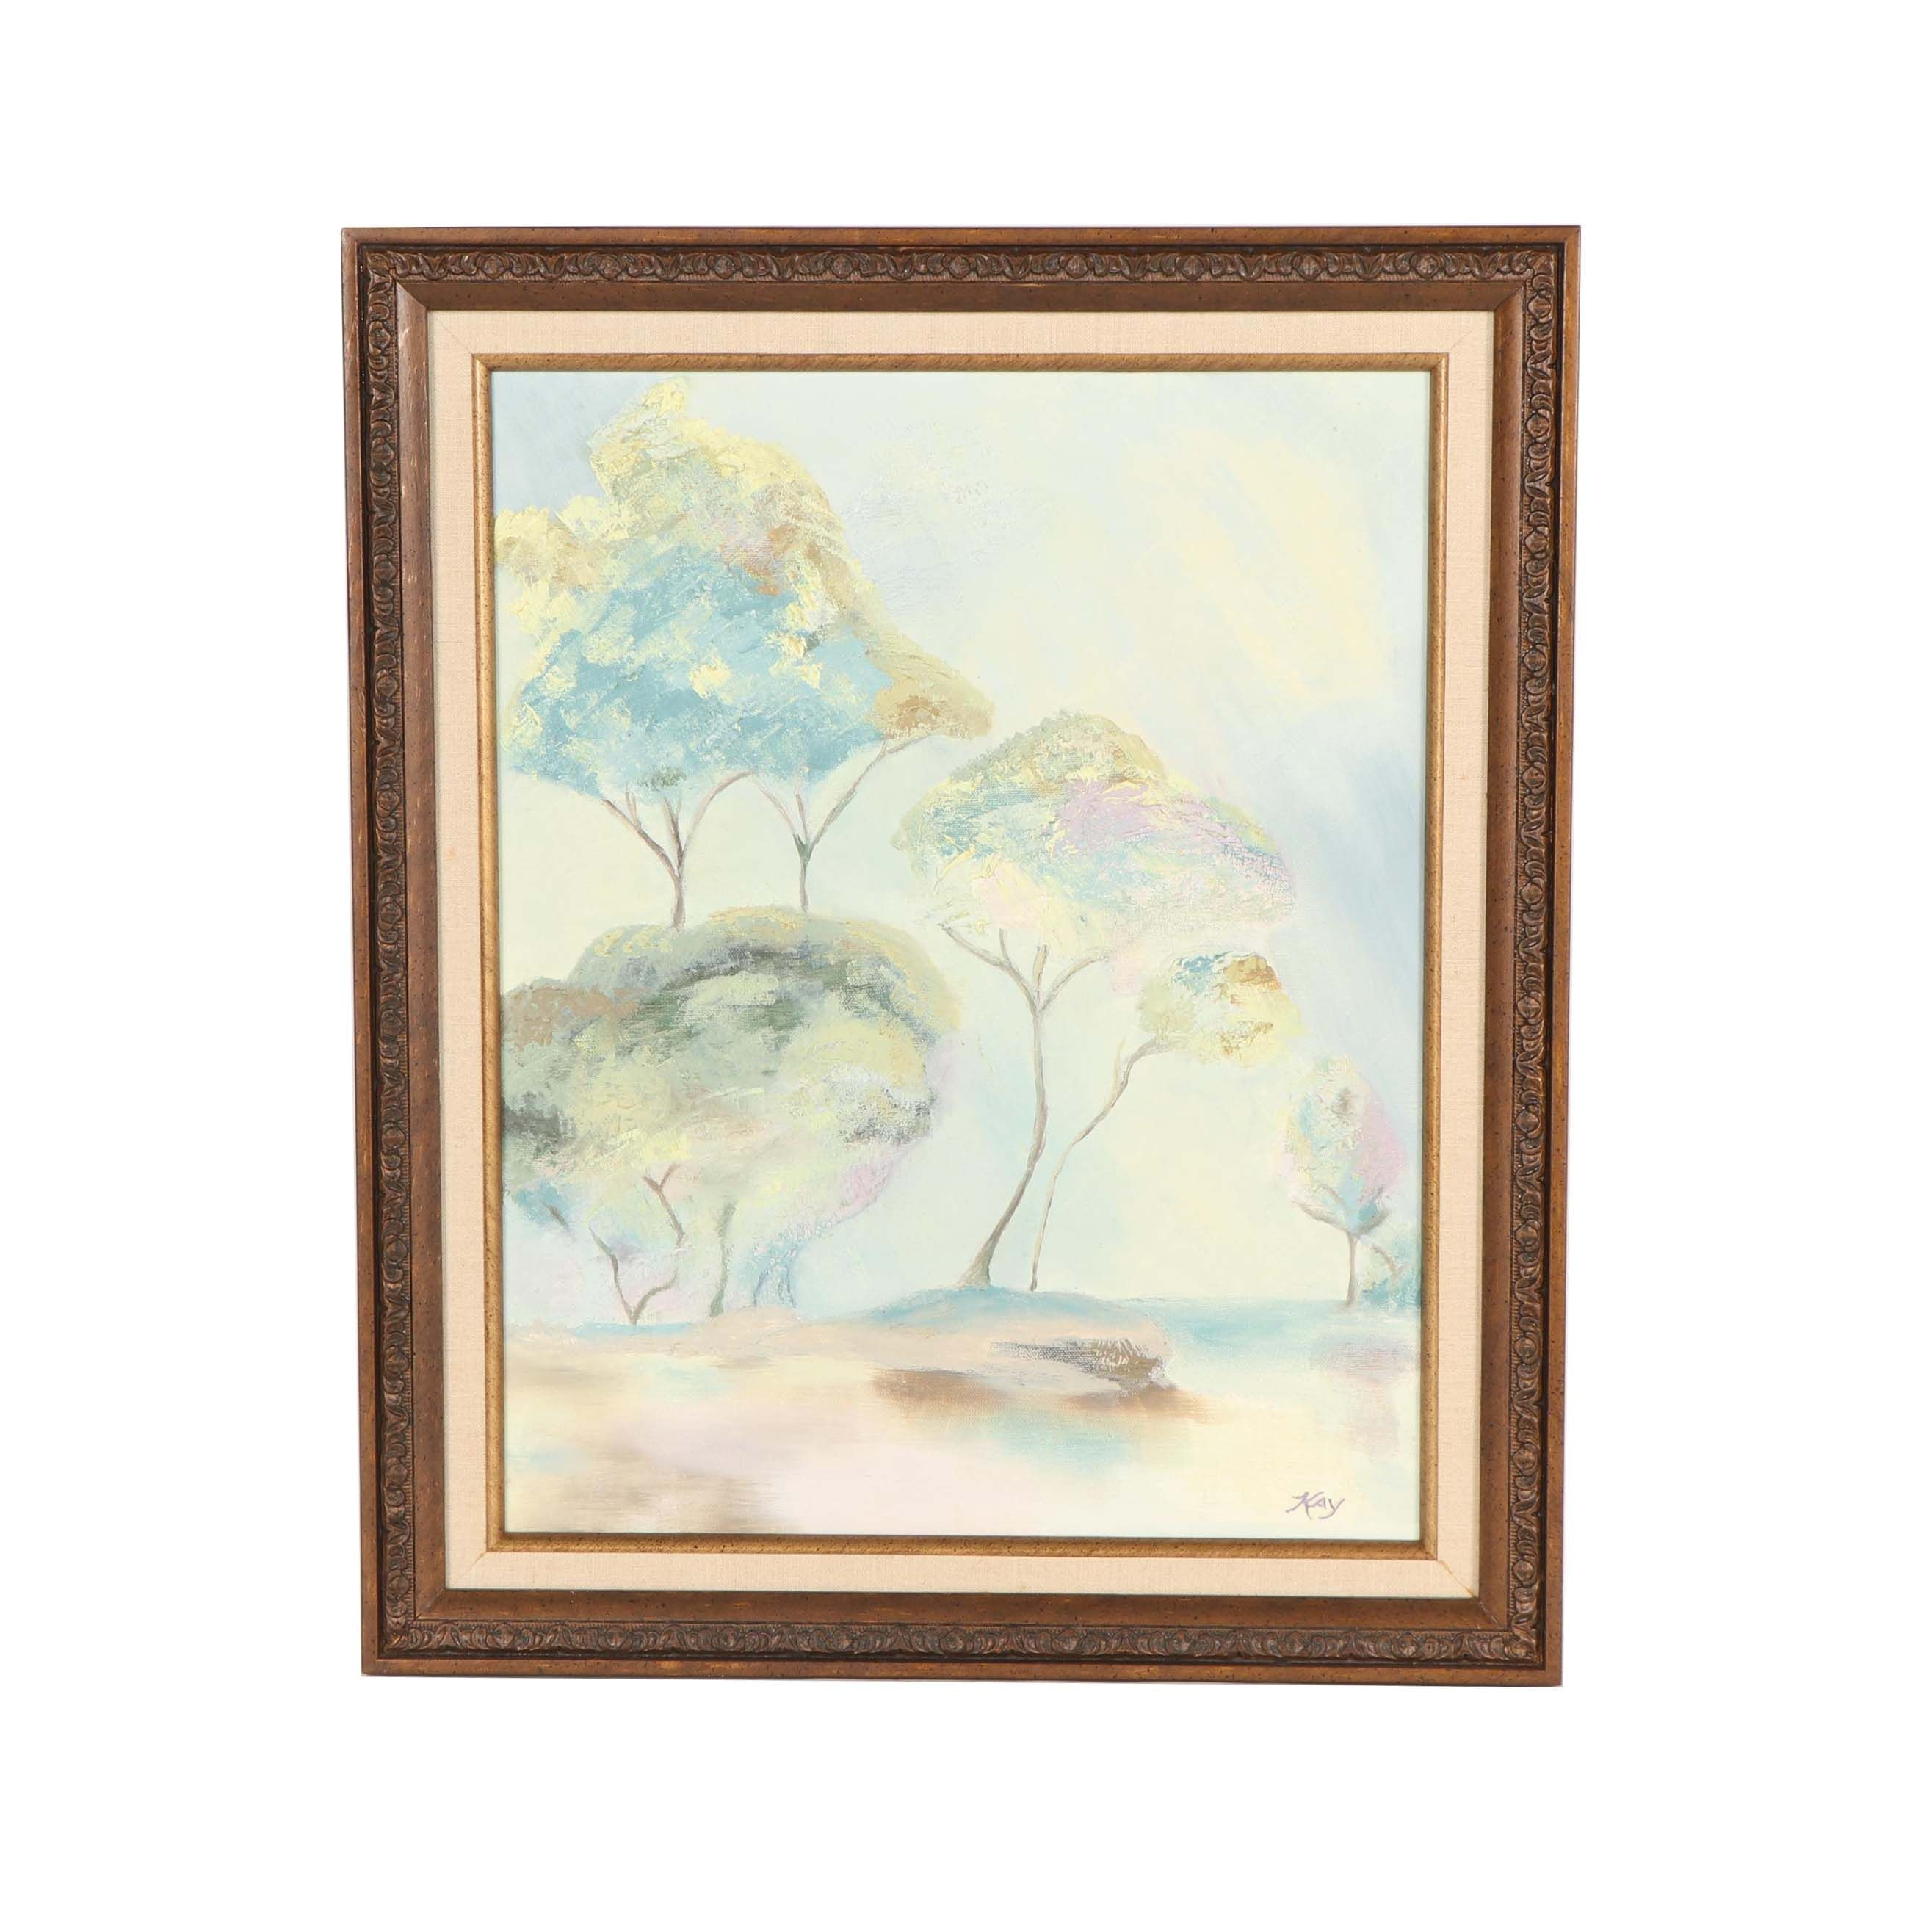 Kay Ethereal Landscape Oil Painting